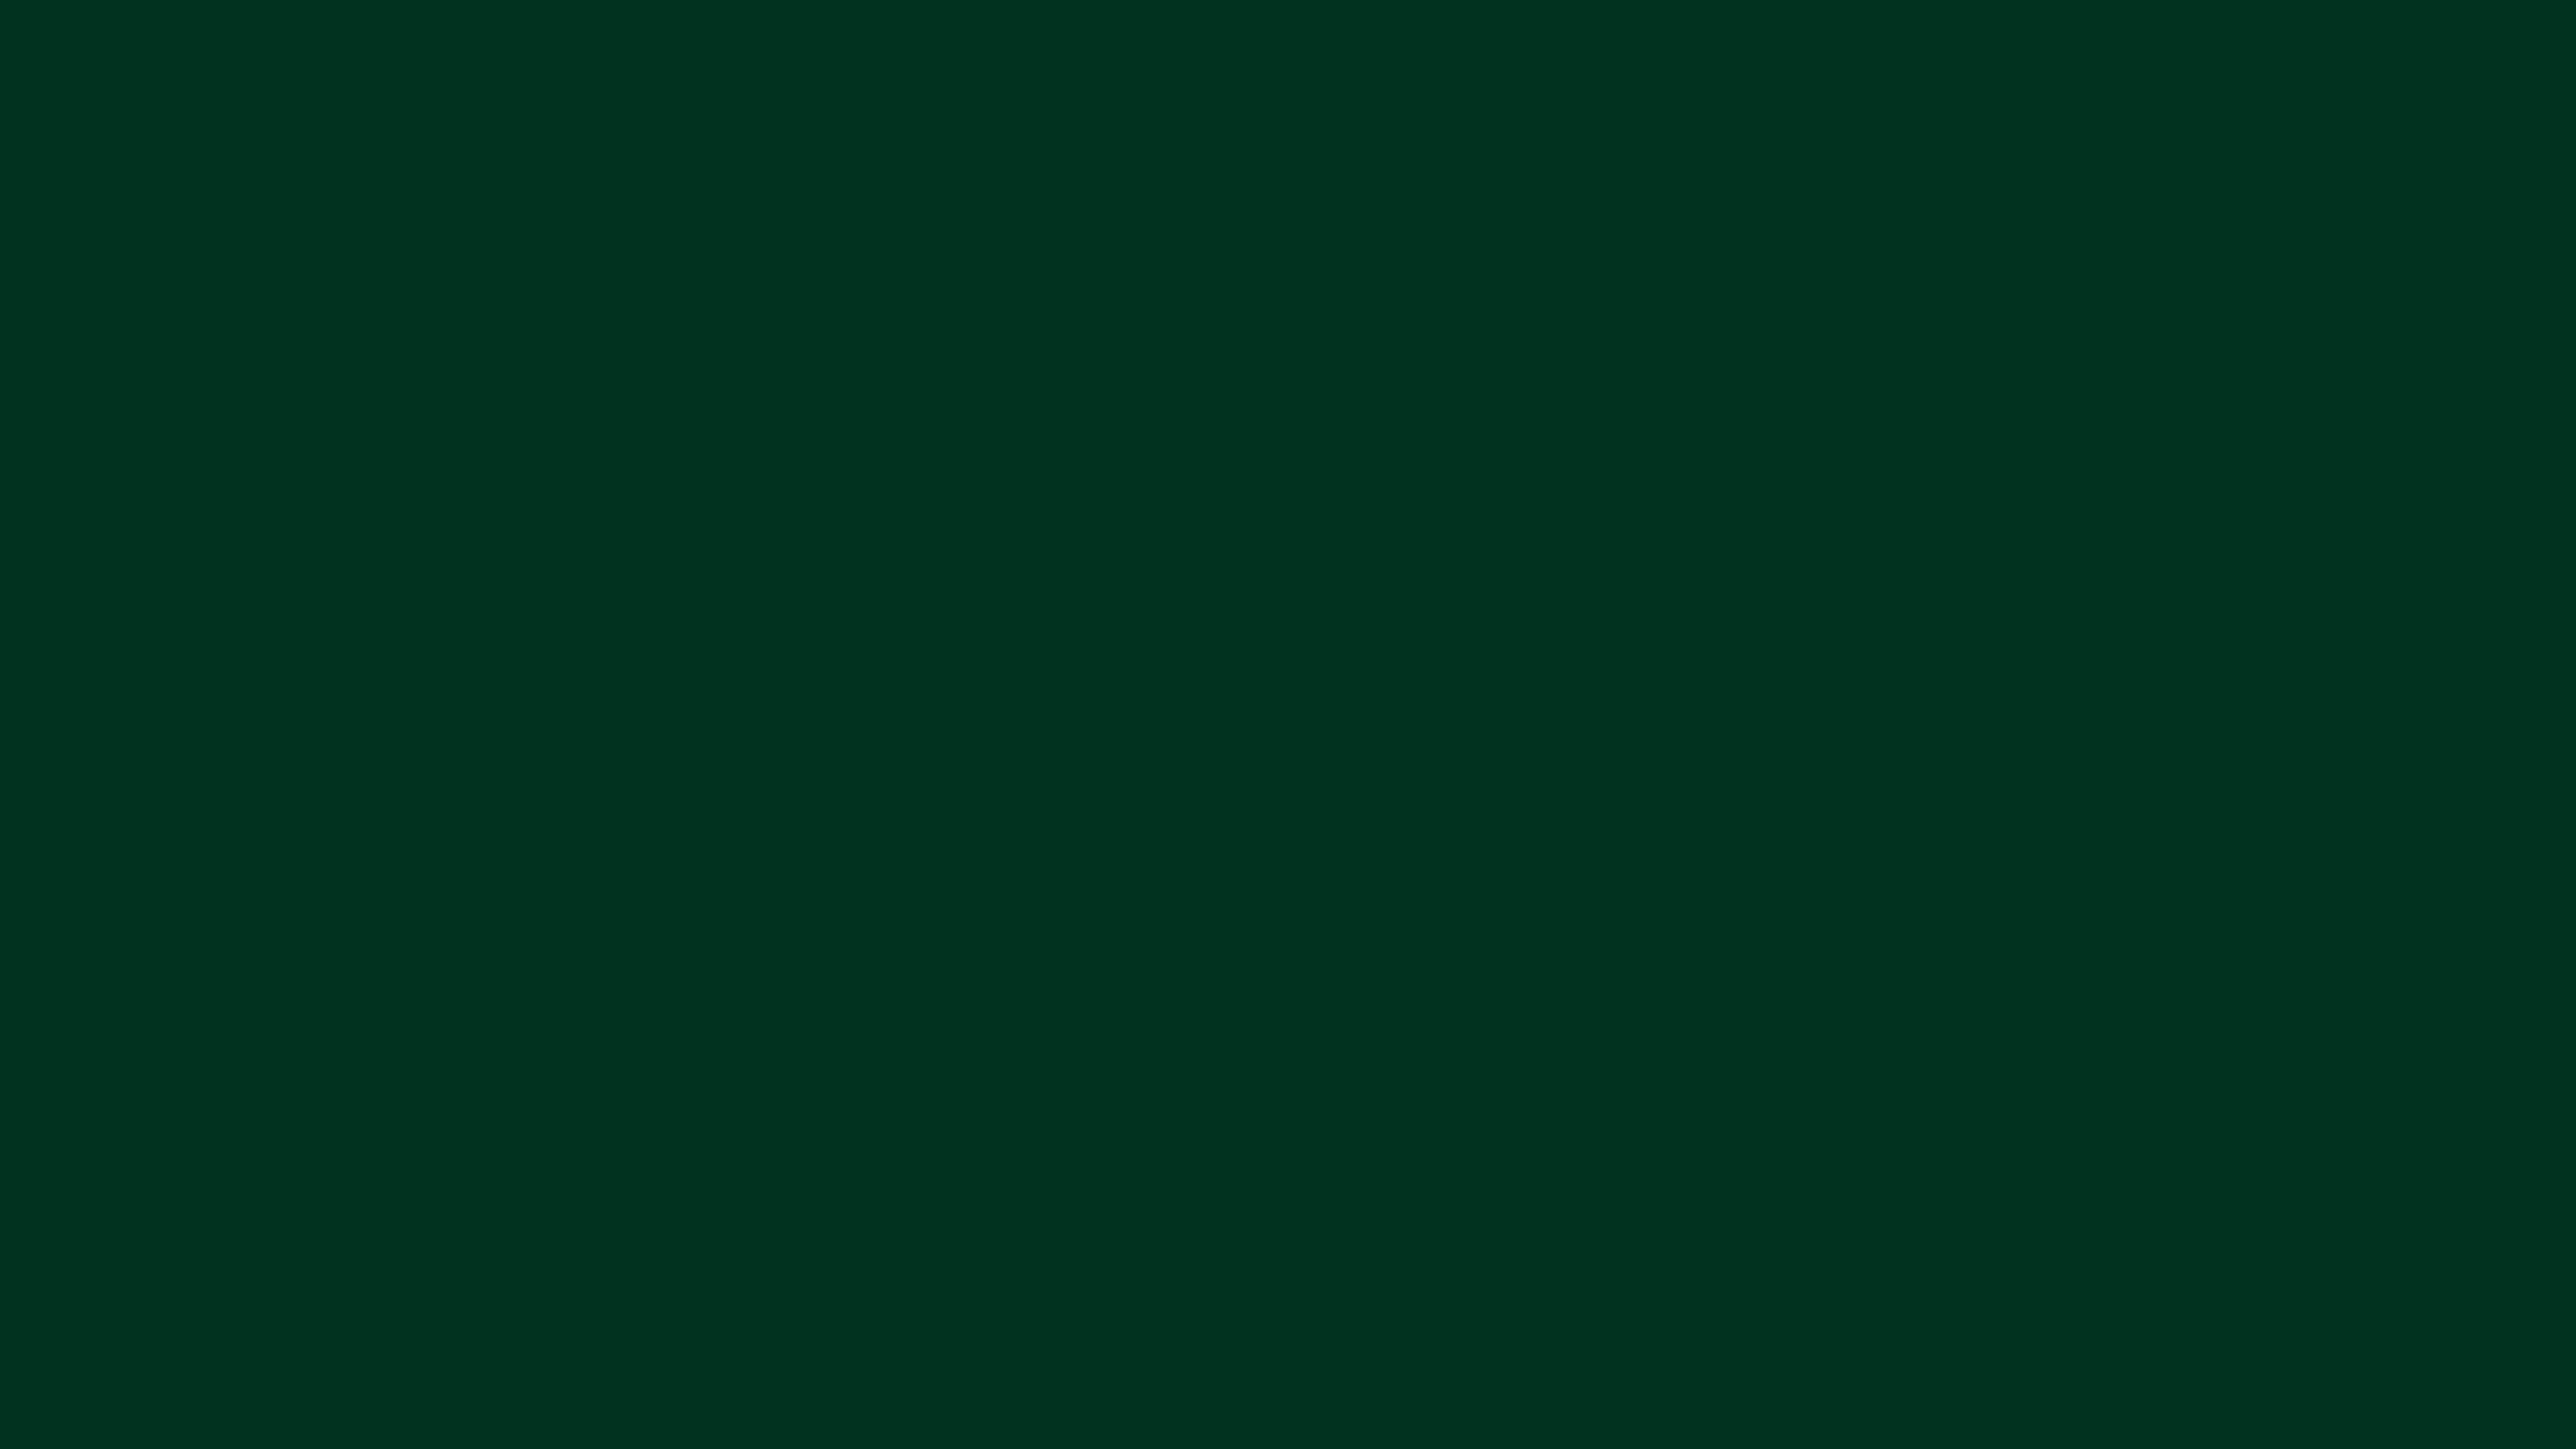 3840x2160 Dark Green Solid Color Background